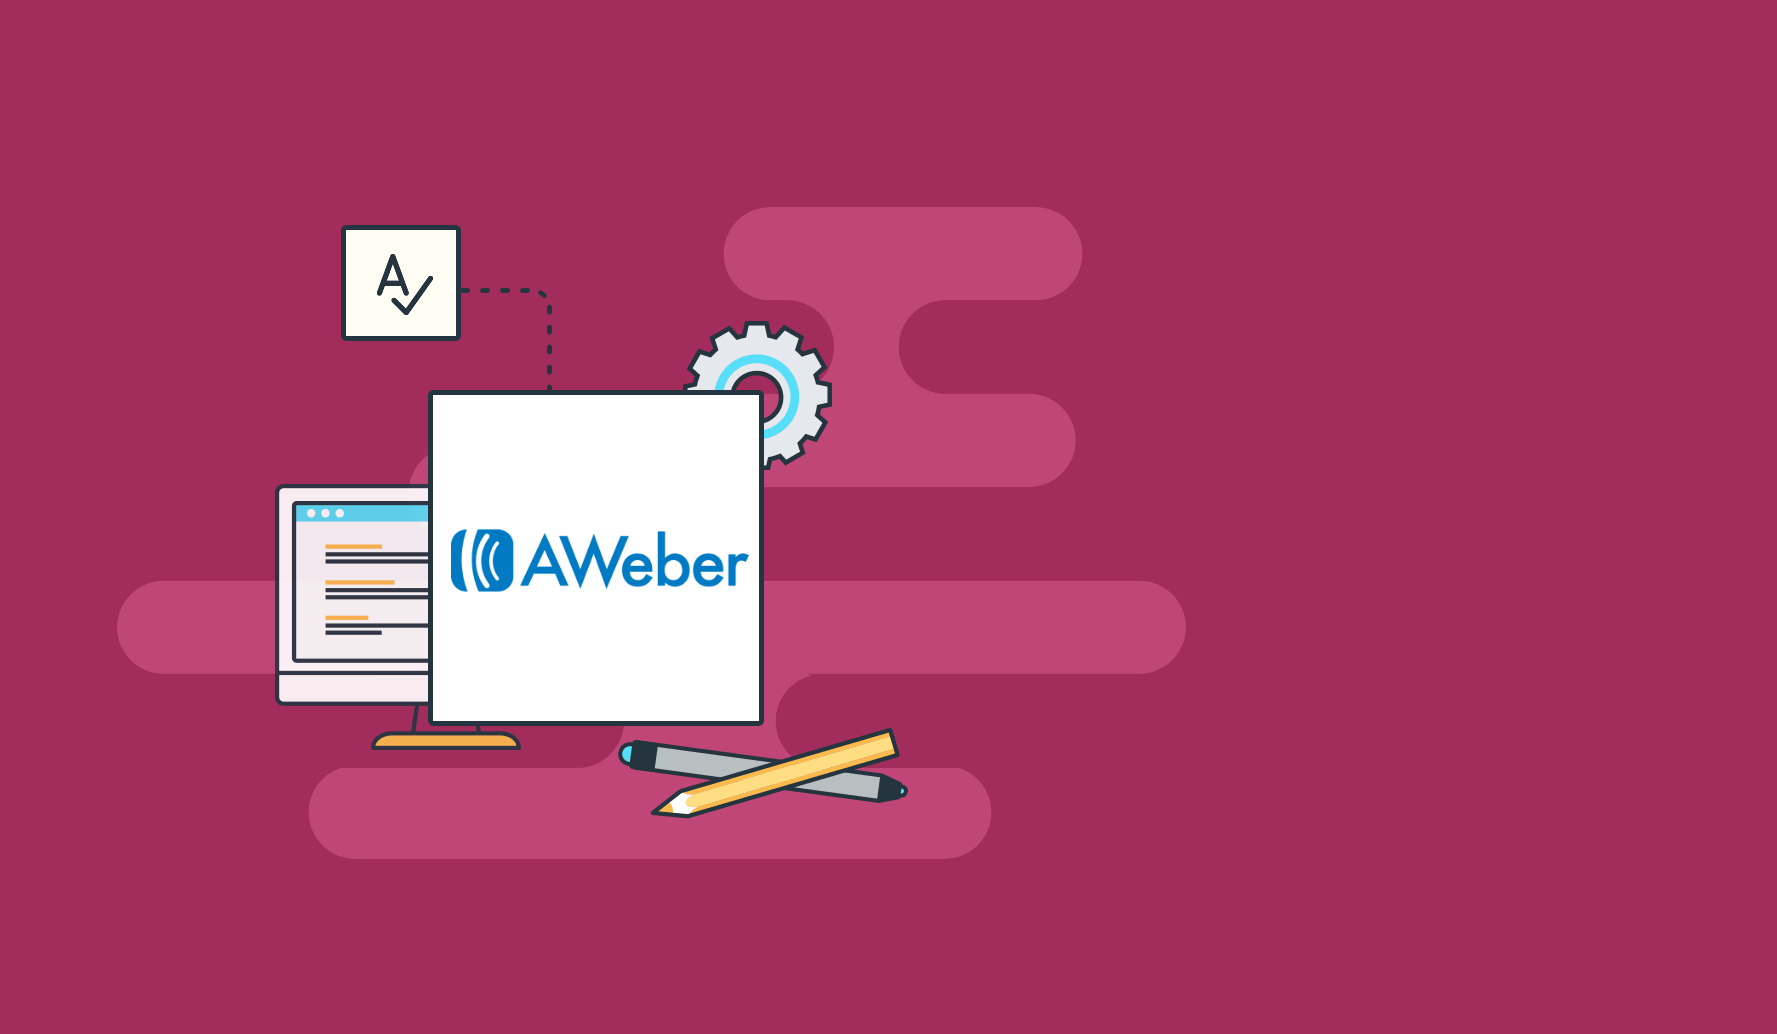 20% Off Online Voucher Code Printable Aweber Email Marketing 2020